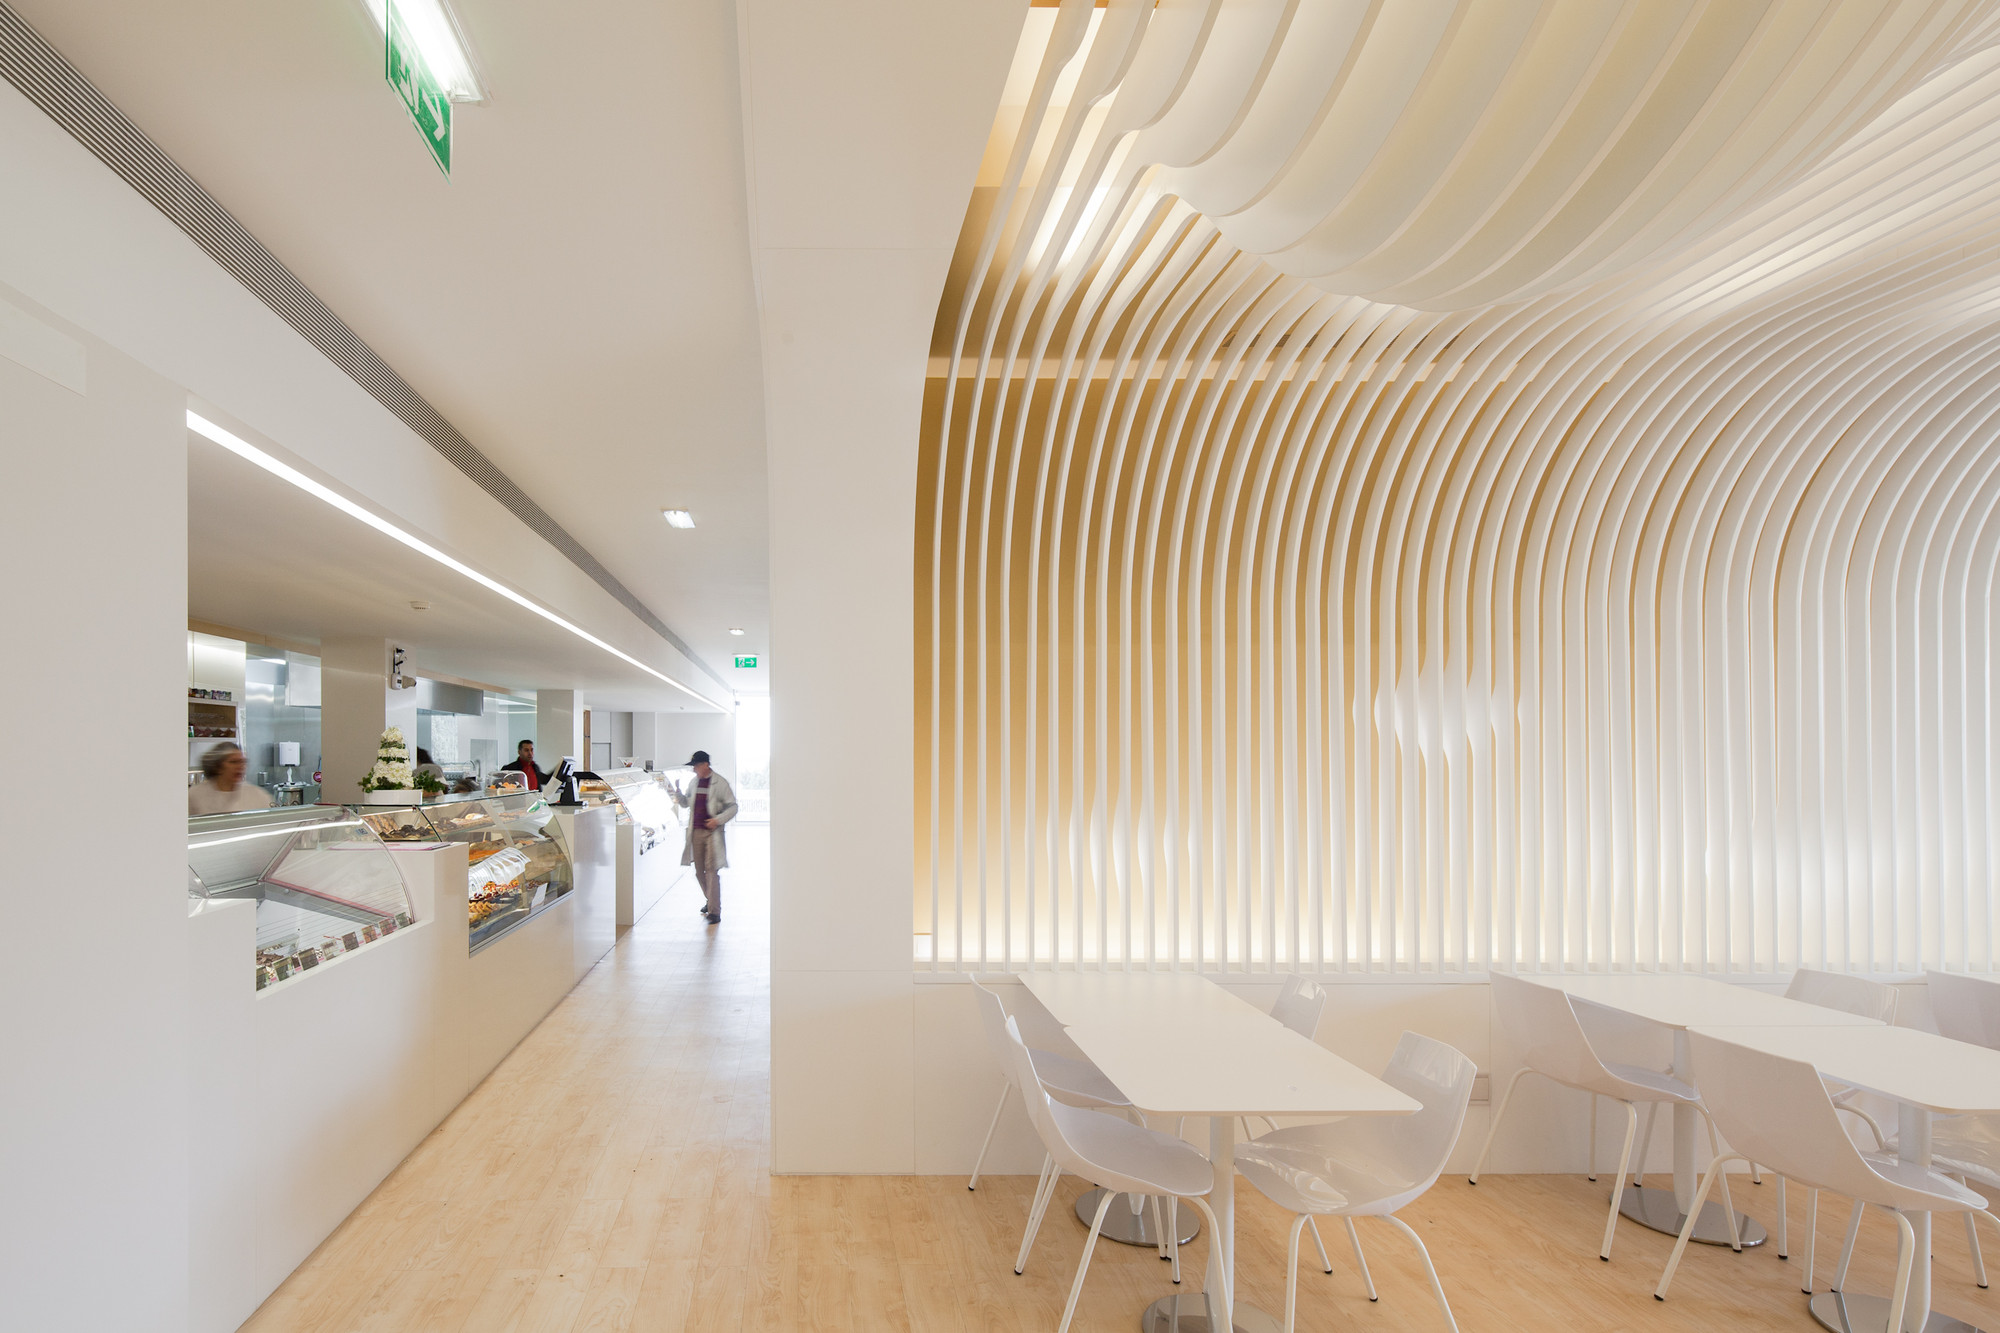 Bakery paulo merlini arquitectura archdaily for Architecture courbe